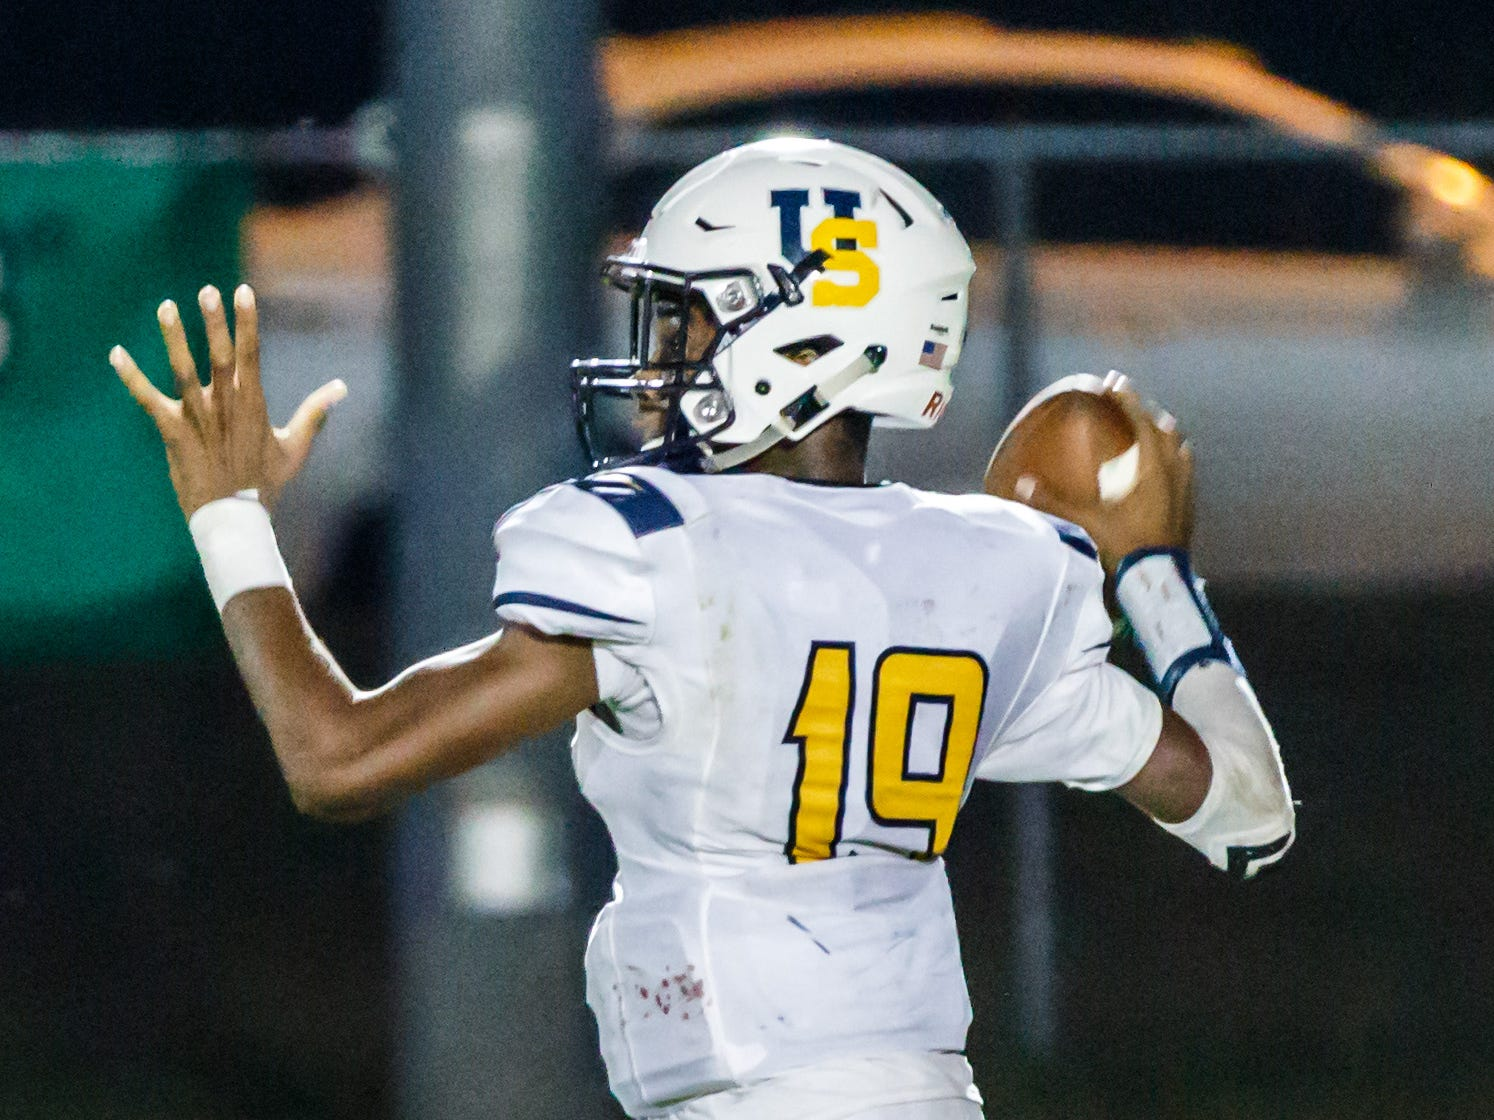 University School quarterback CJ Boyd (19) looks to pass as he scrambles out of the pocket during the game at Lake Country Lutheran on Thursday, Sept. 13, 2018.